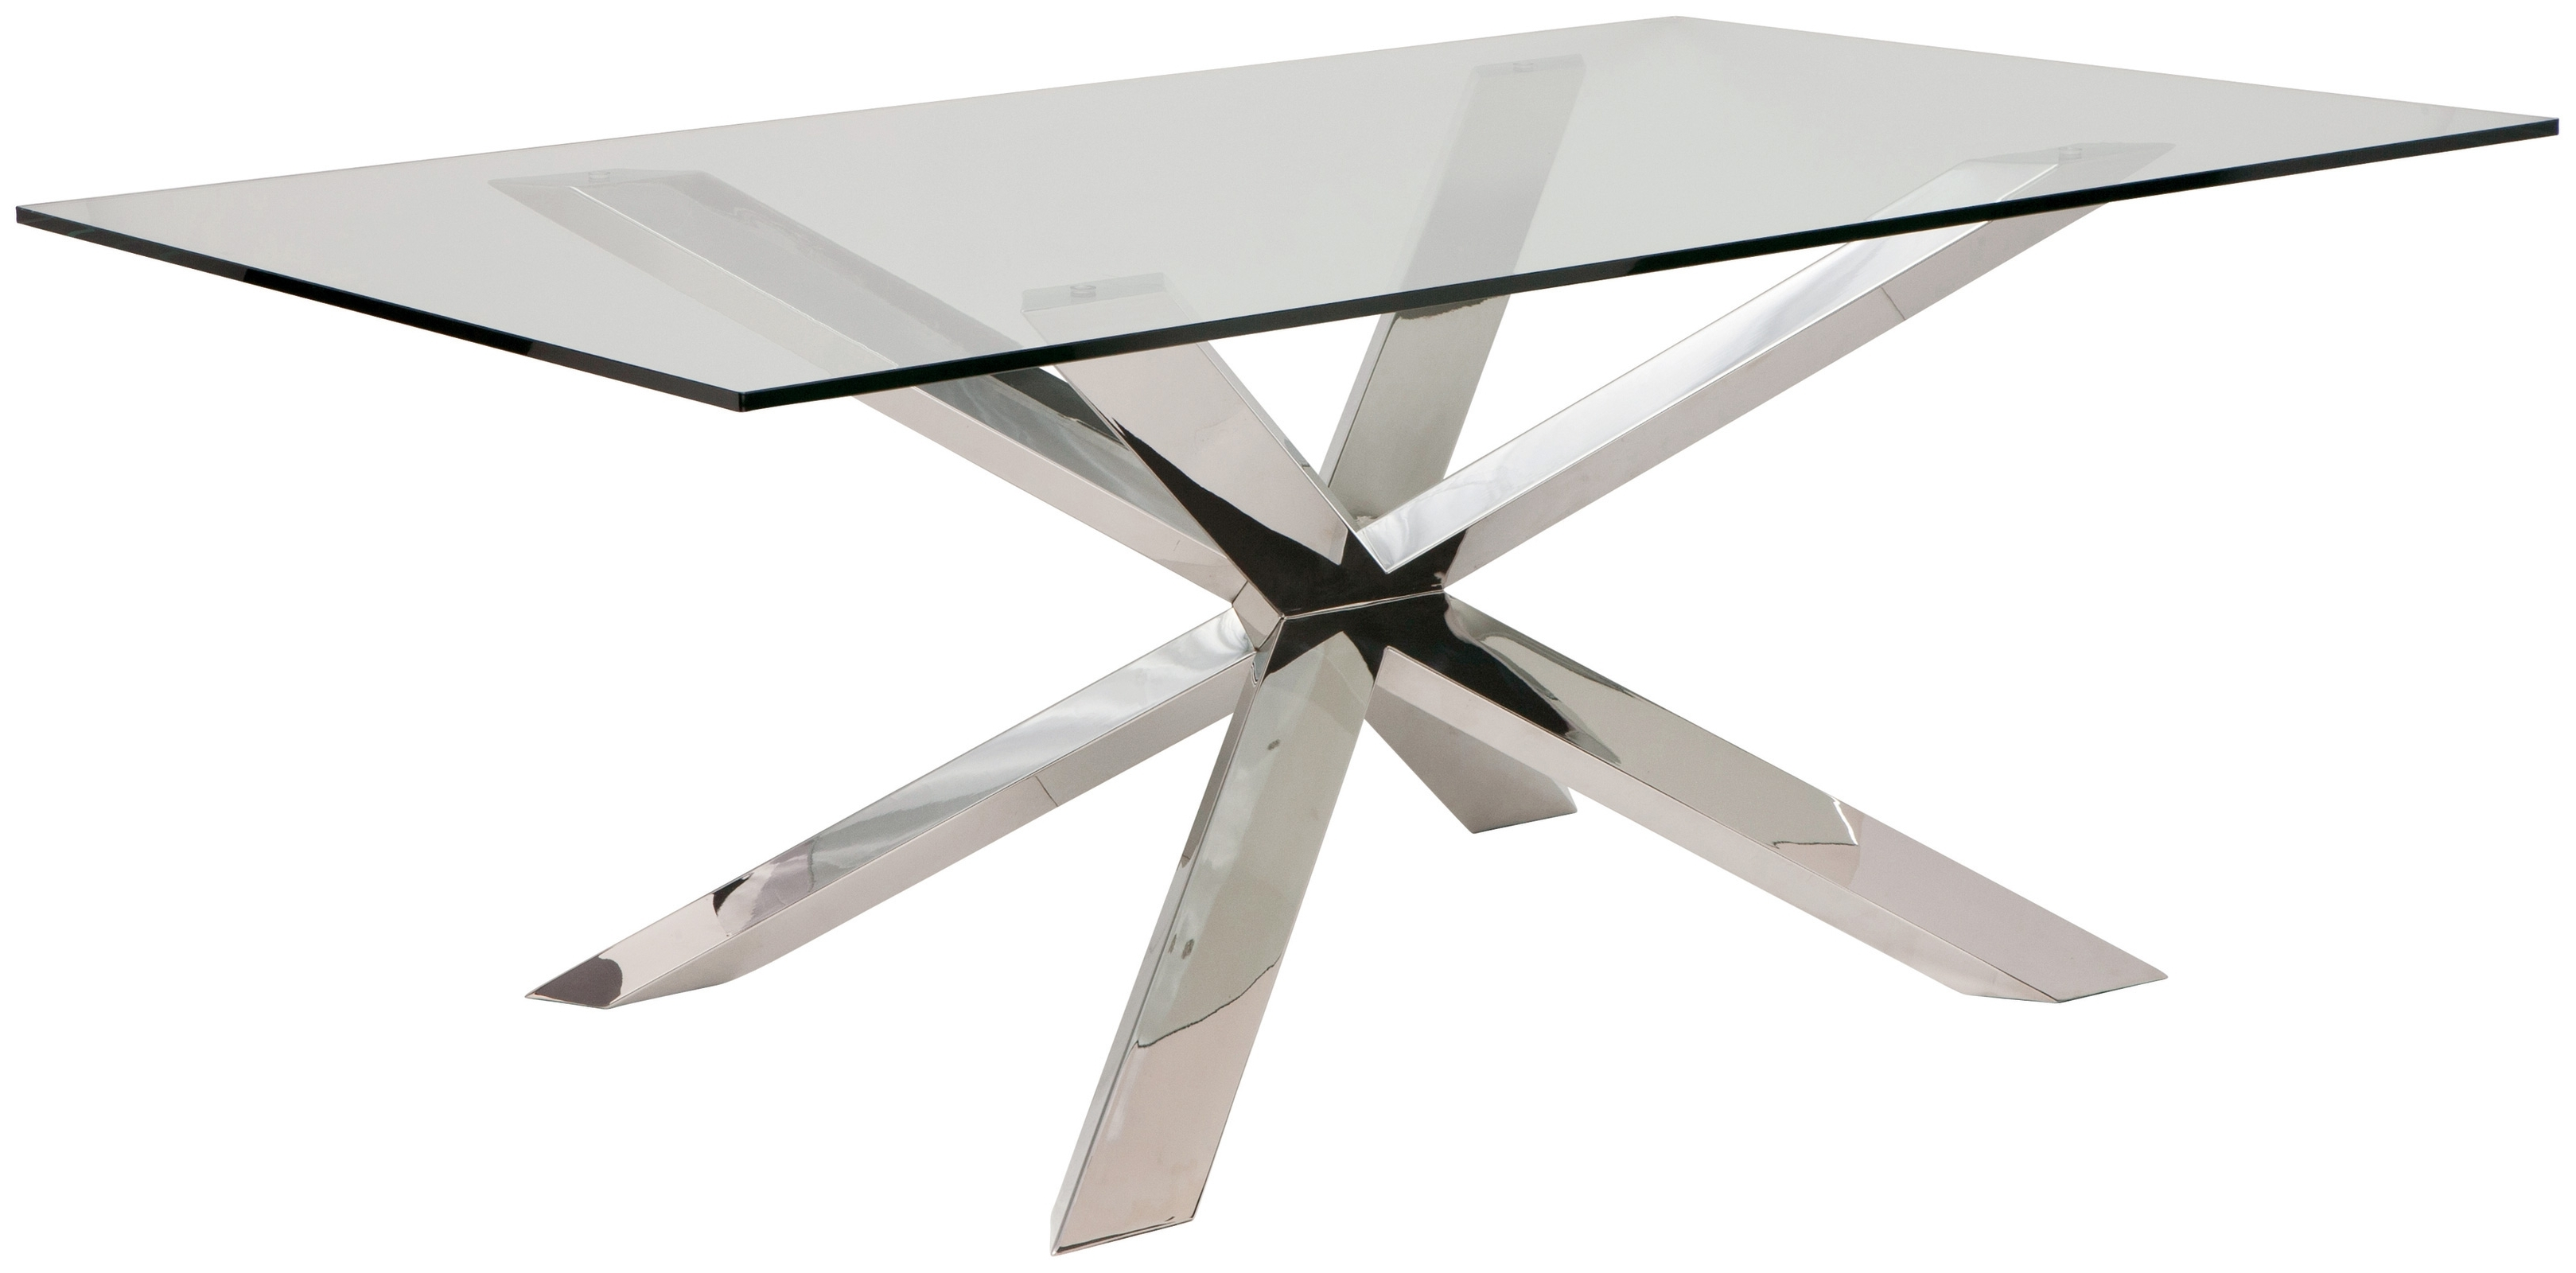 Most Popular Glass And Stainless Steel Dining Tables Pertaining To Couture 78 Inch Dining Table In Polished Silver Stainless Steel And (View 20 of 25)